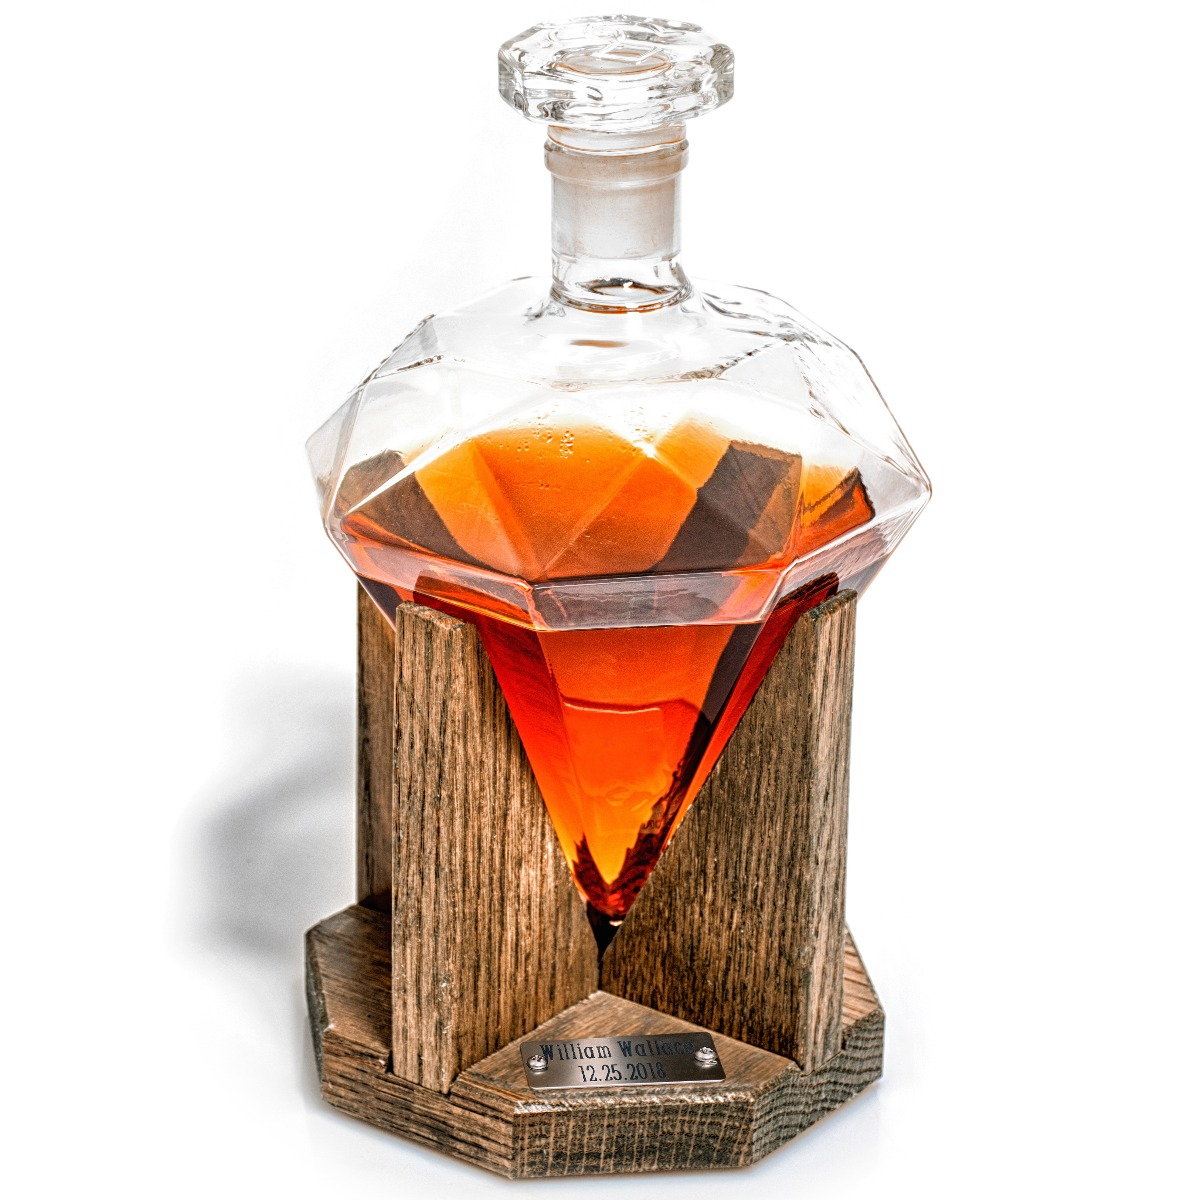 Prestige Decanters Cullinan Decanter, an engraved diamond whiskey decanter